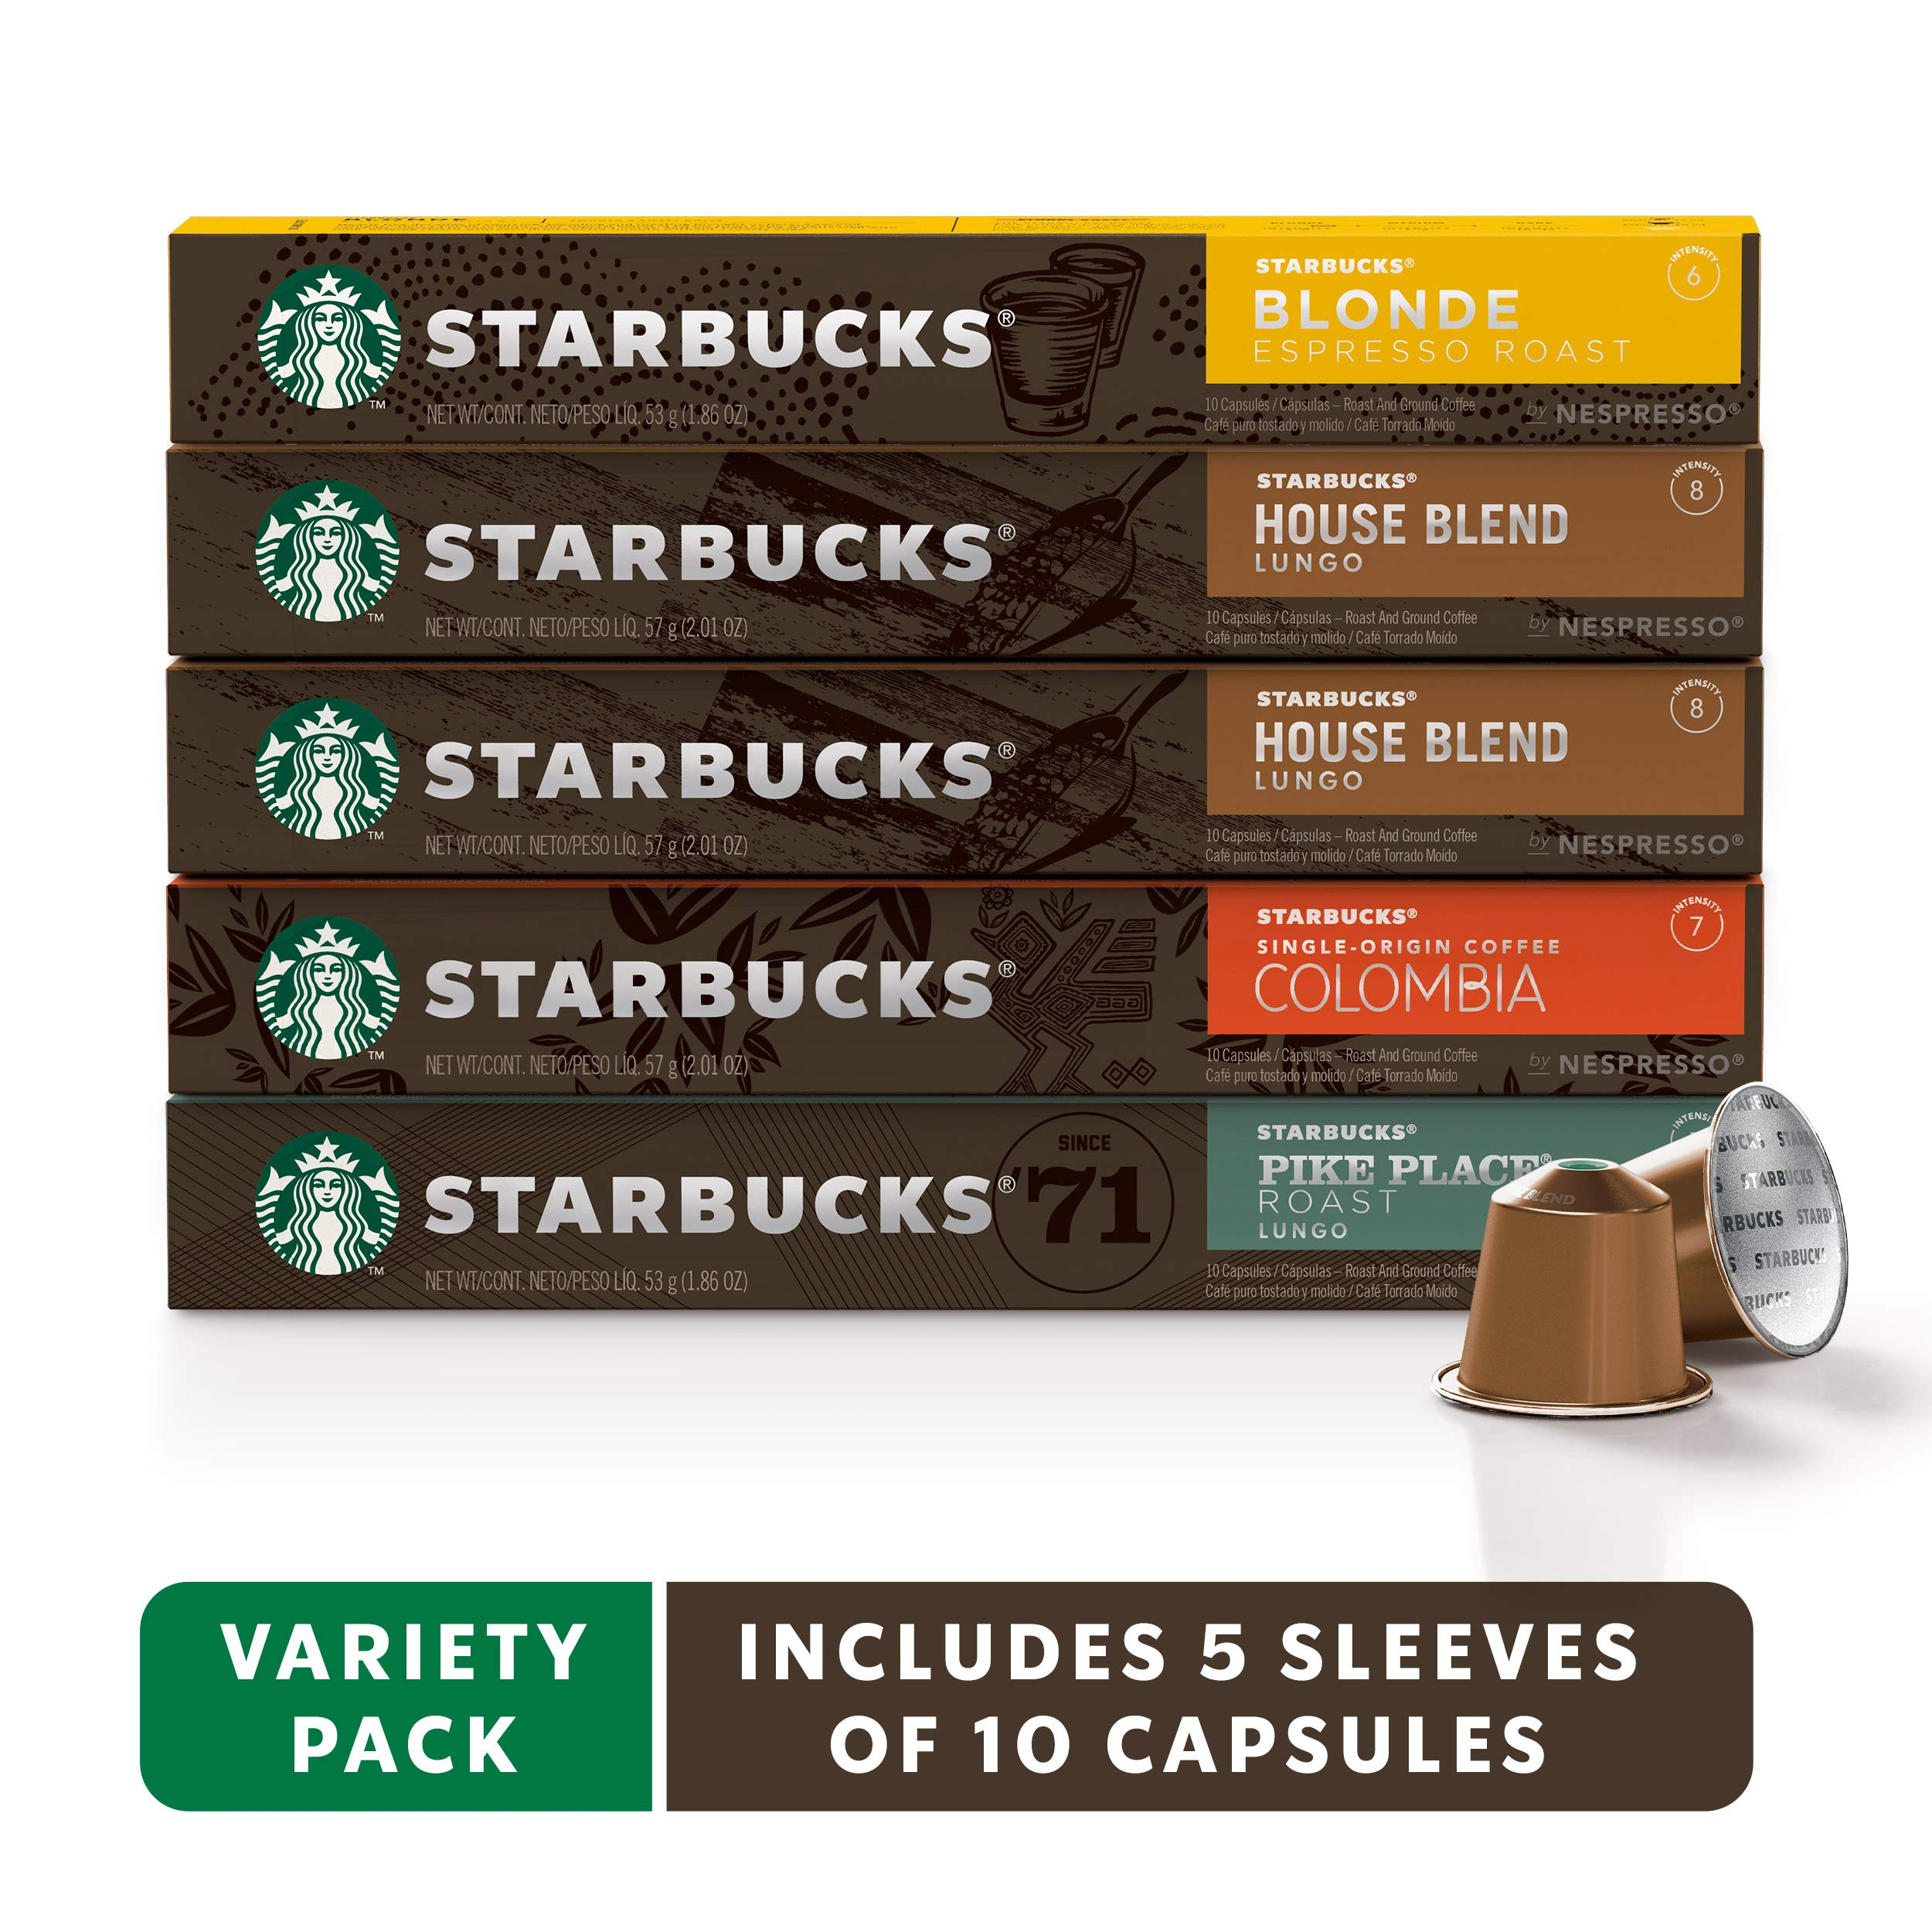 Starbucks by Nespresso, Mild Variety Pack (50-count single serve capsules, 10 of each flavor, compatible with Nespresso Original Line System) by Starbucks for Nespresso (Image #1)